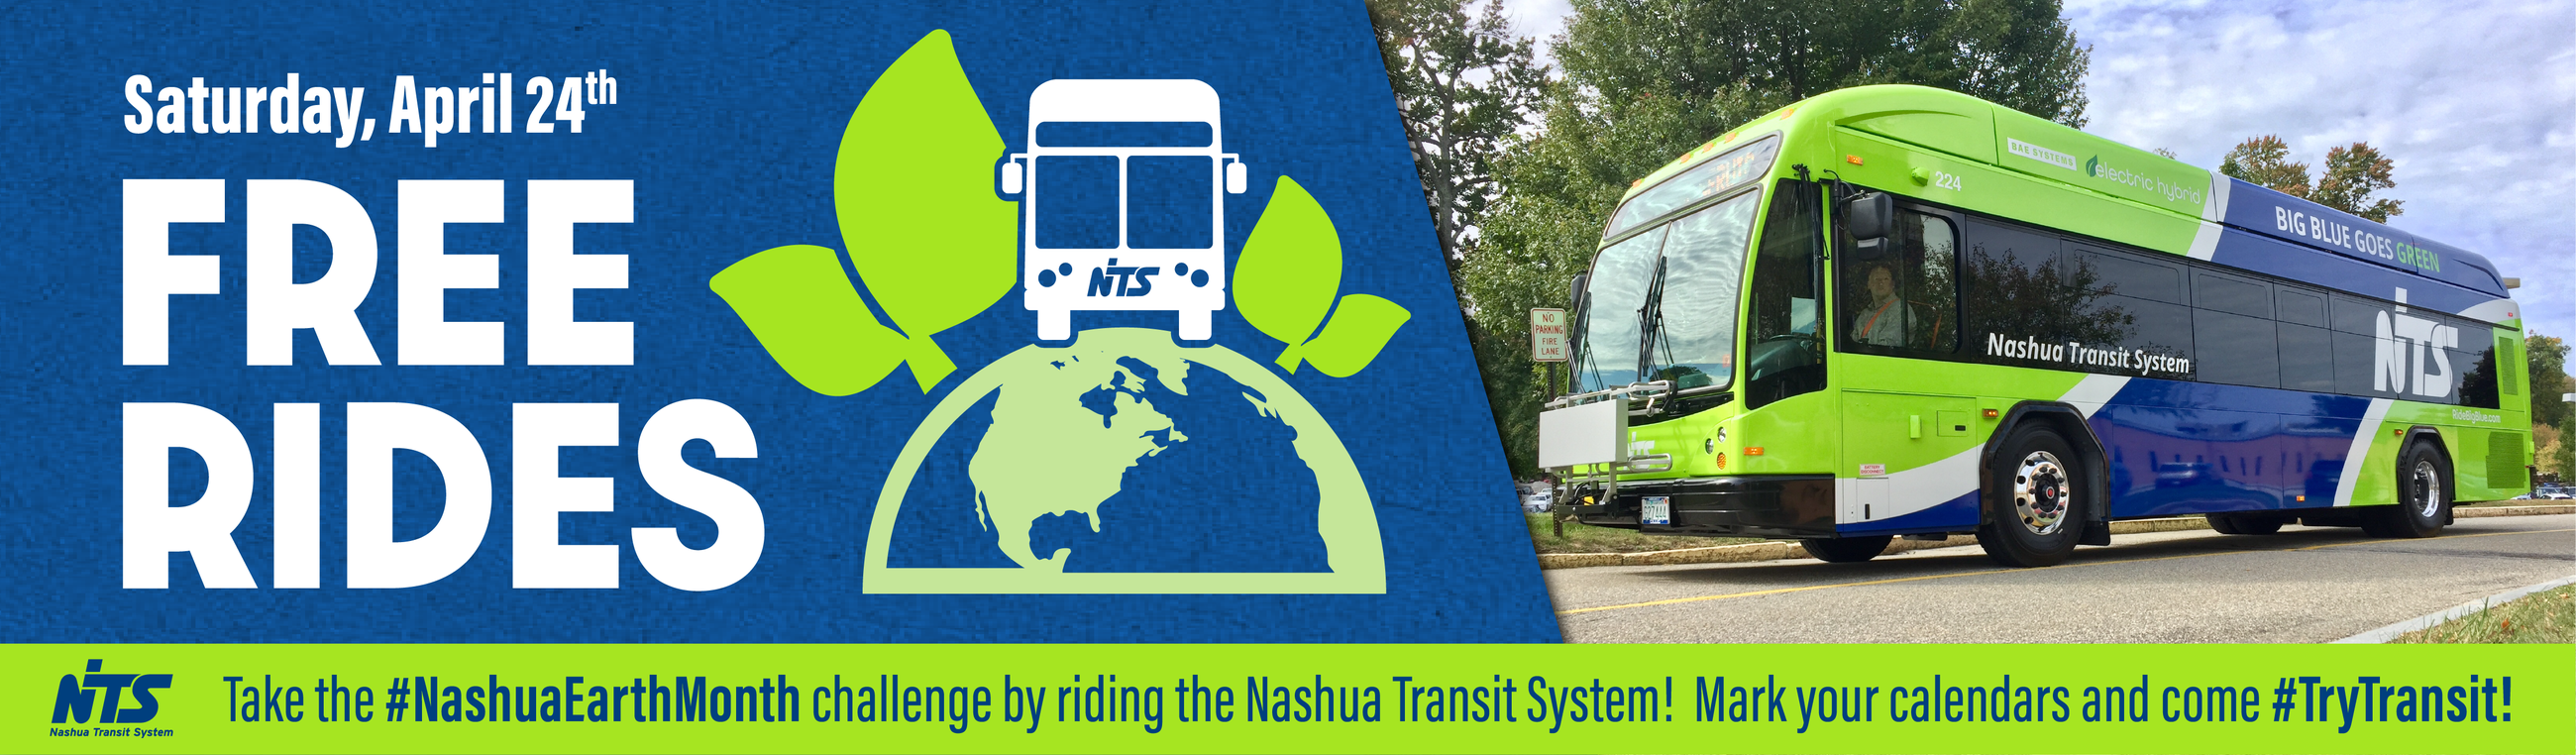 Saturday April 24th, FREE RIDES. Take the #NashuaEarthMonth challenge by riding with nashua transit